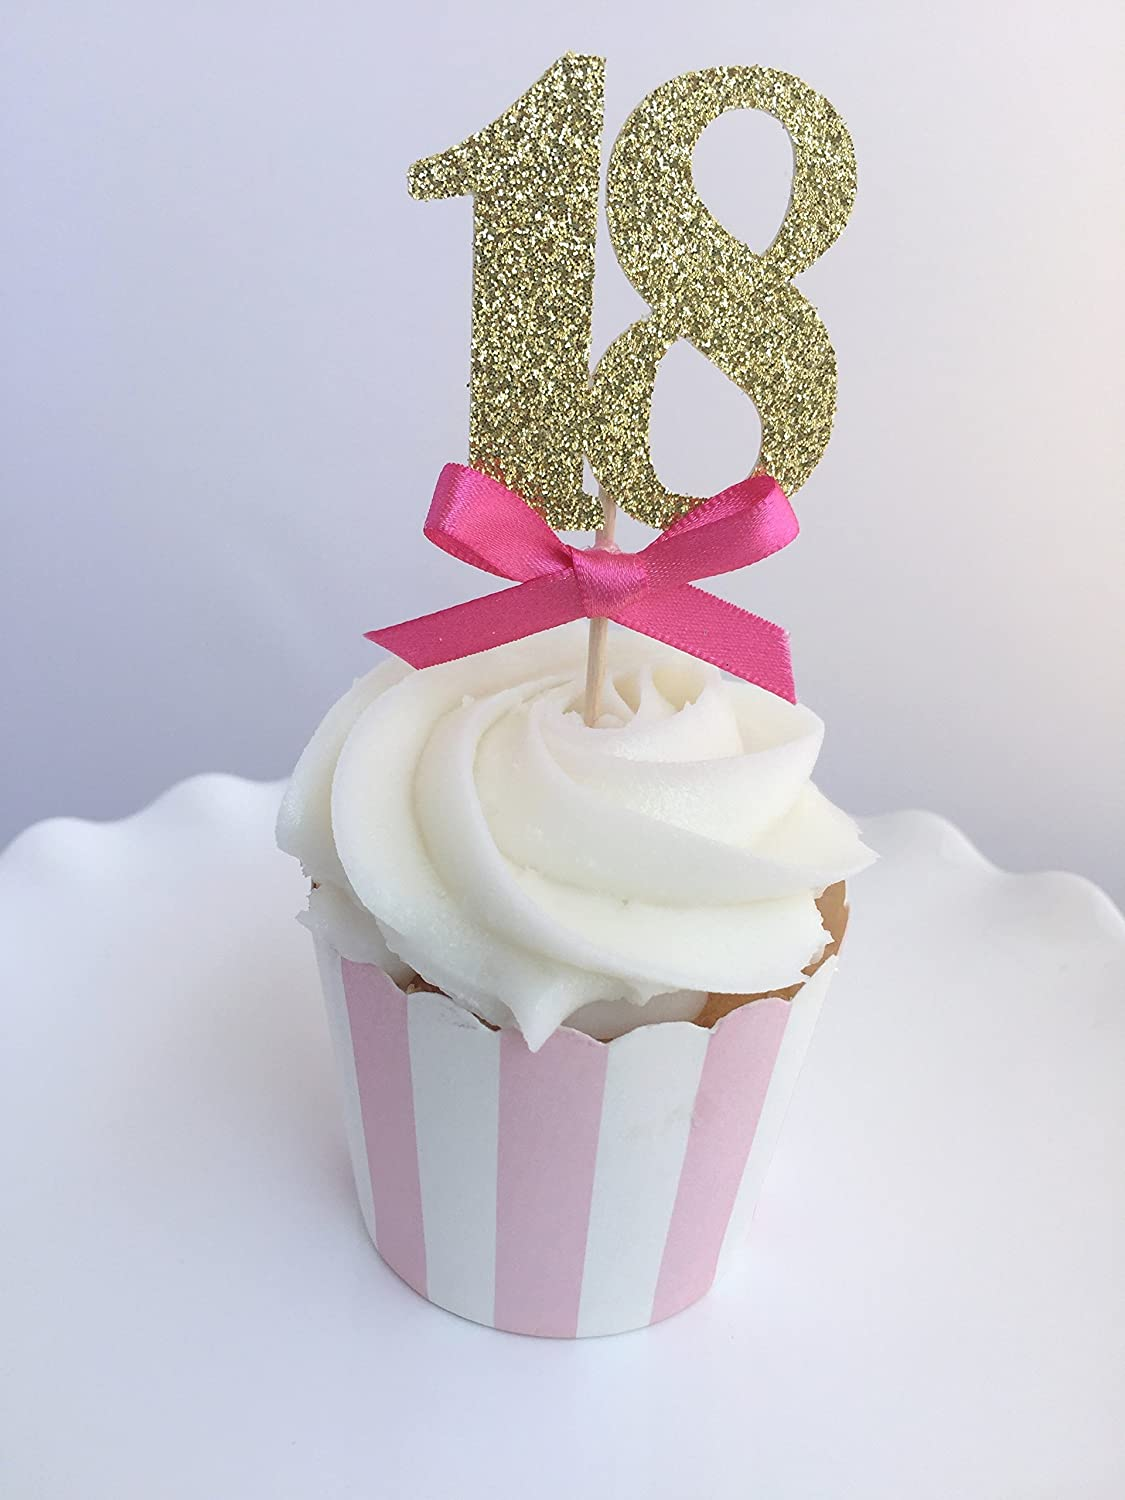 Outstanding Amazon Com Pink Gold Glitter Number Cupcake Toppers 18Th Funny Birthday Cards Online Inifofree Goldxyz